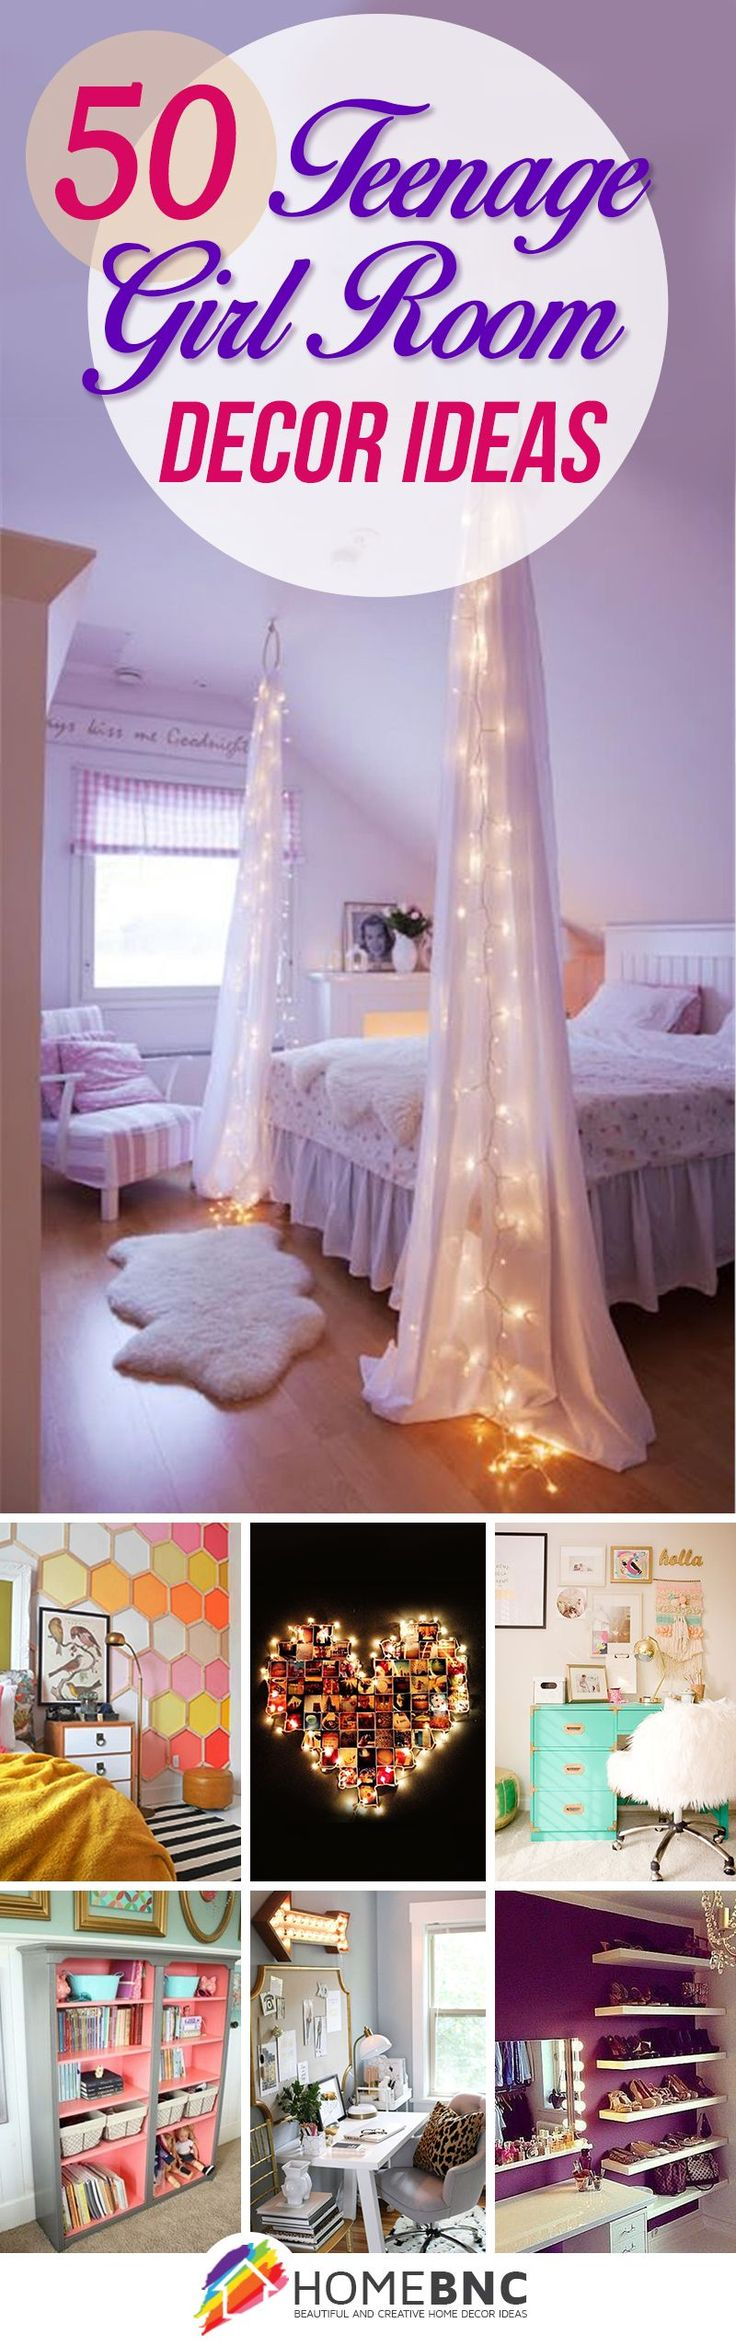 25 Best Ideas About Bedroom Themes On Pinterest Canopy For Bed Kids Bed Canopy And Apartment Decorating Themes